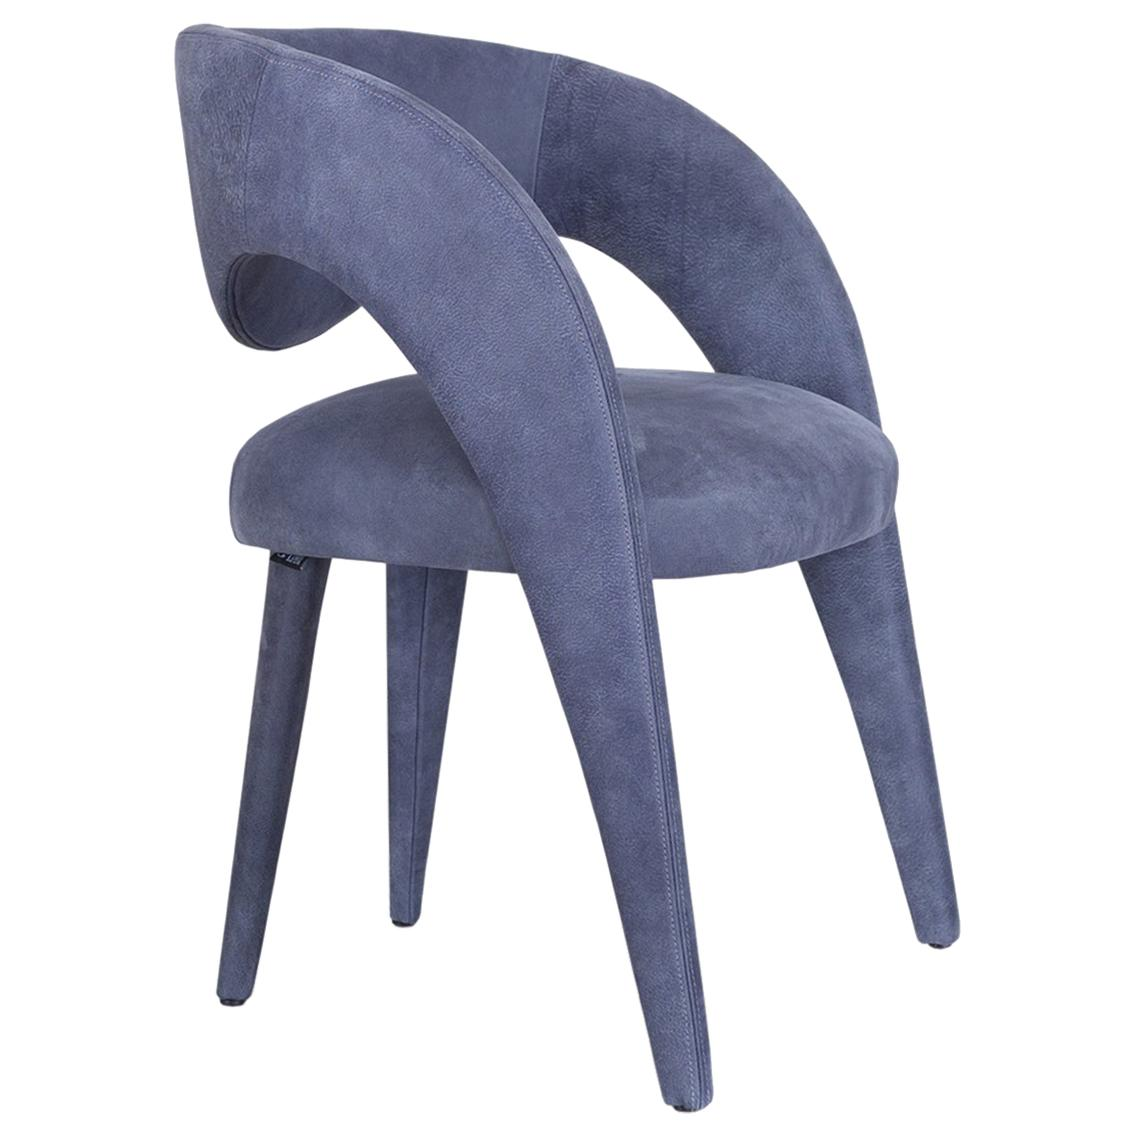 21st Century Modern Laurence Chair with Armrests Leather Handcrafted Greenapple